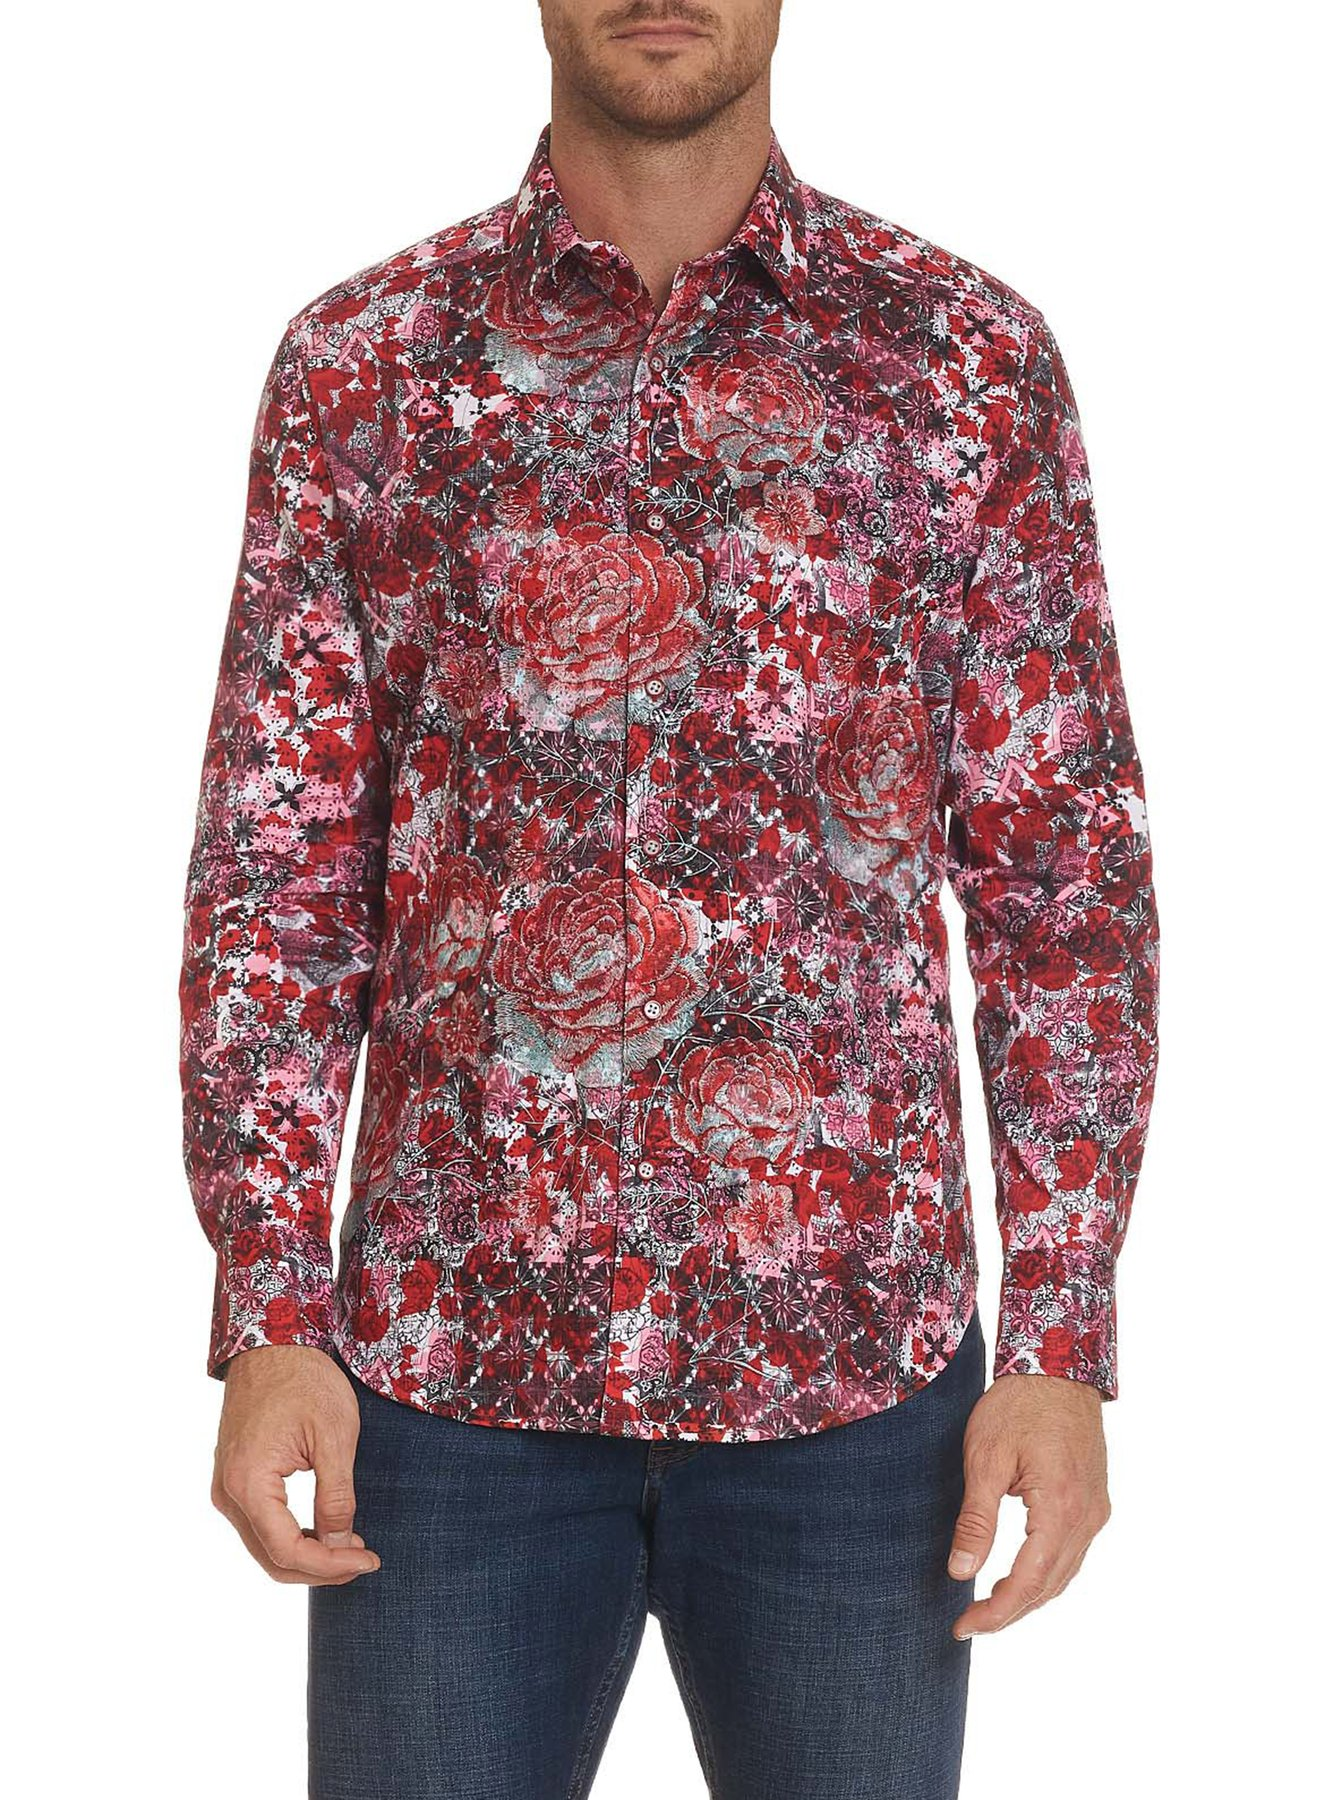 Robert Graham Blood Rose Sport Shirt Red